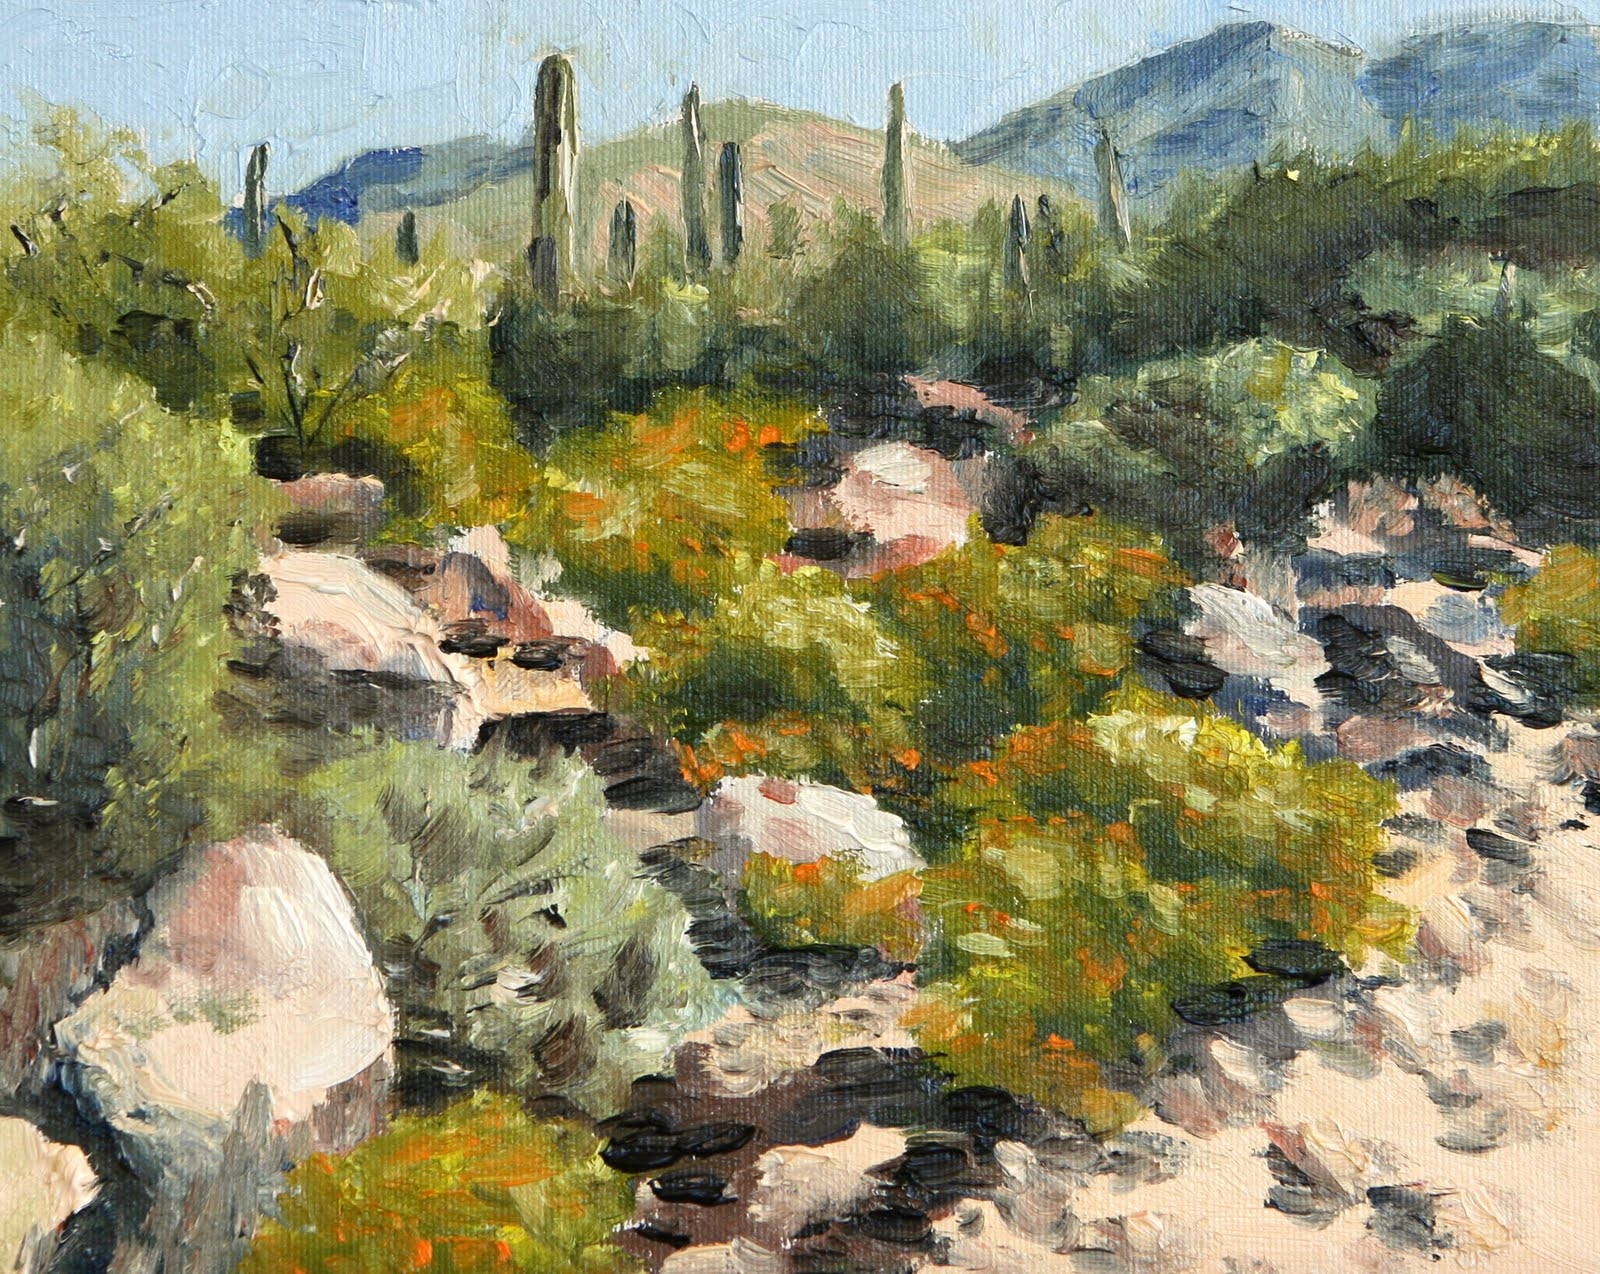 Daily Painters of Arizona: Cactus Rock Garden